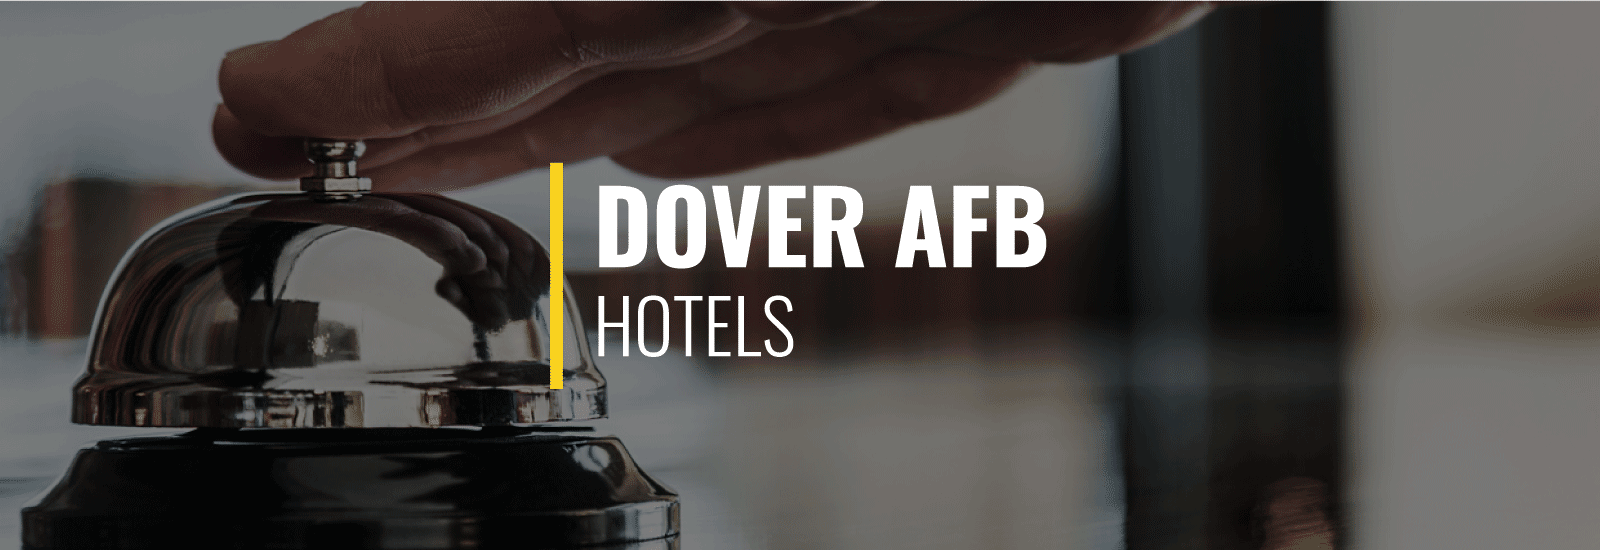 Dover AFB Hotels